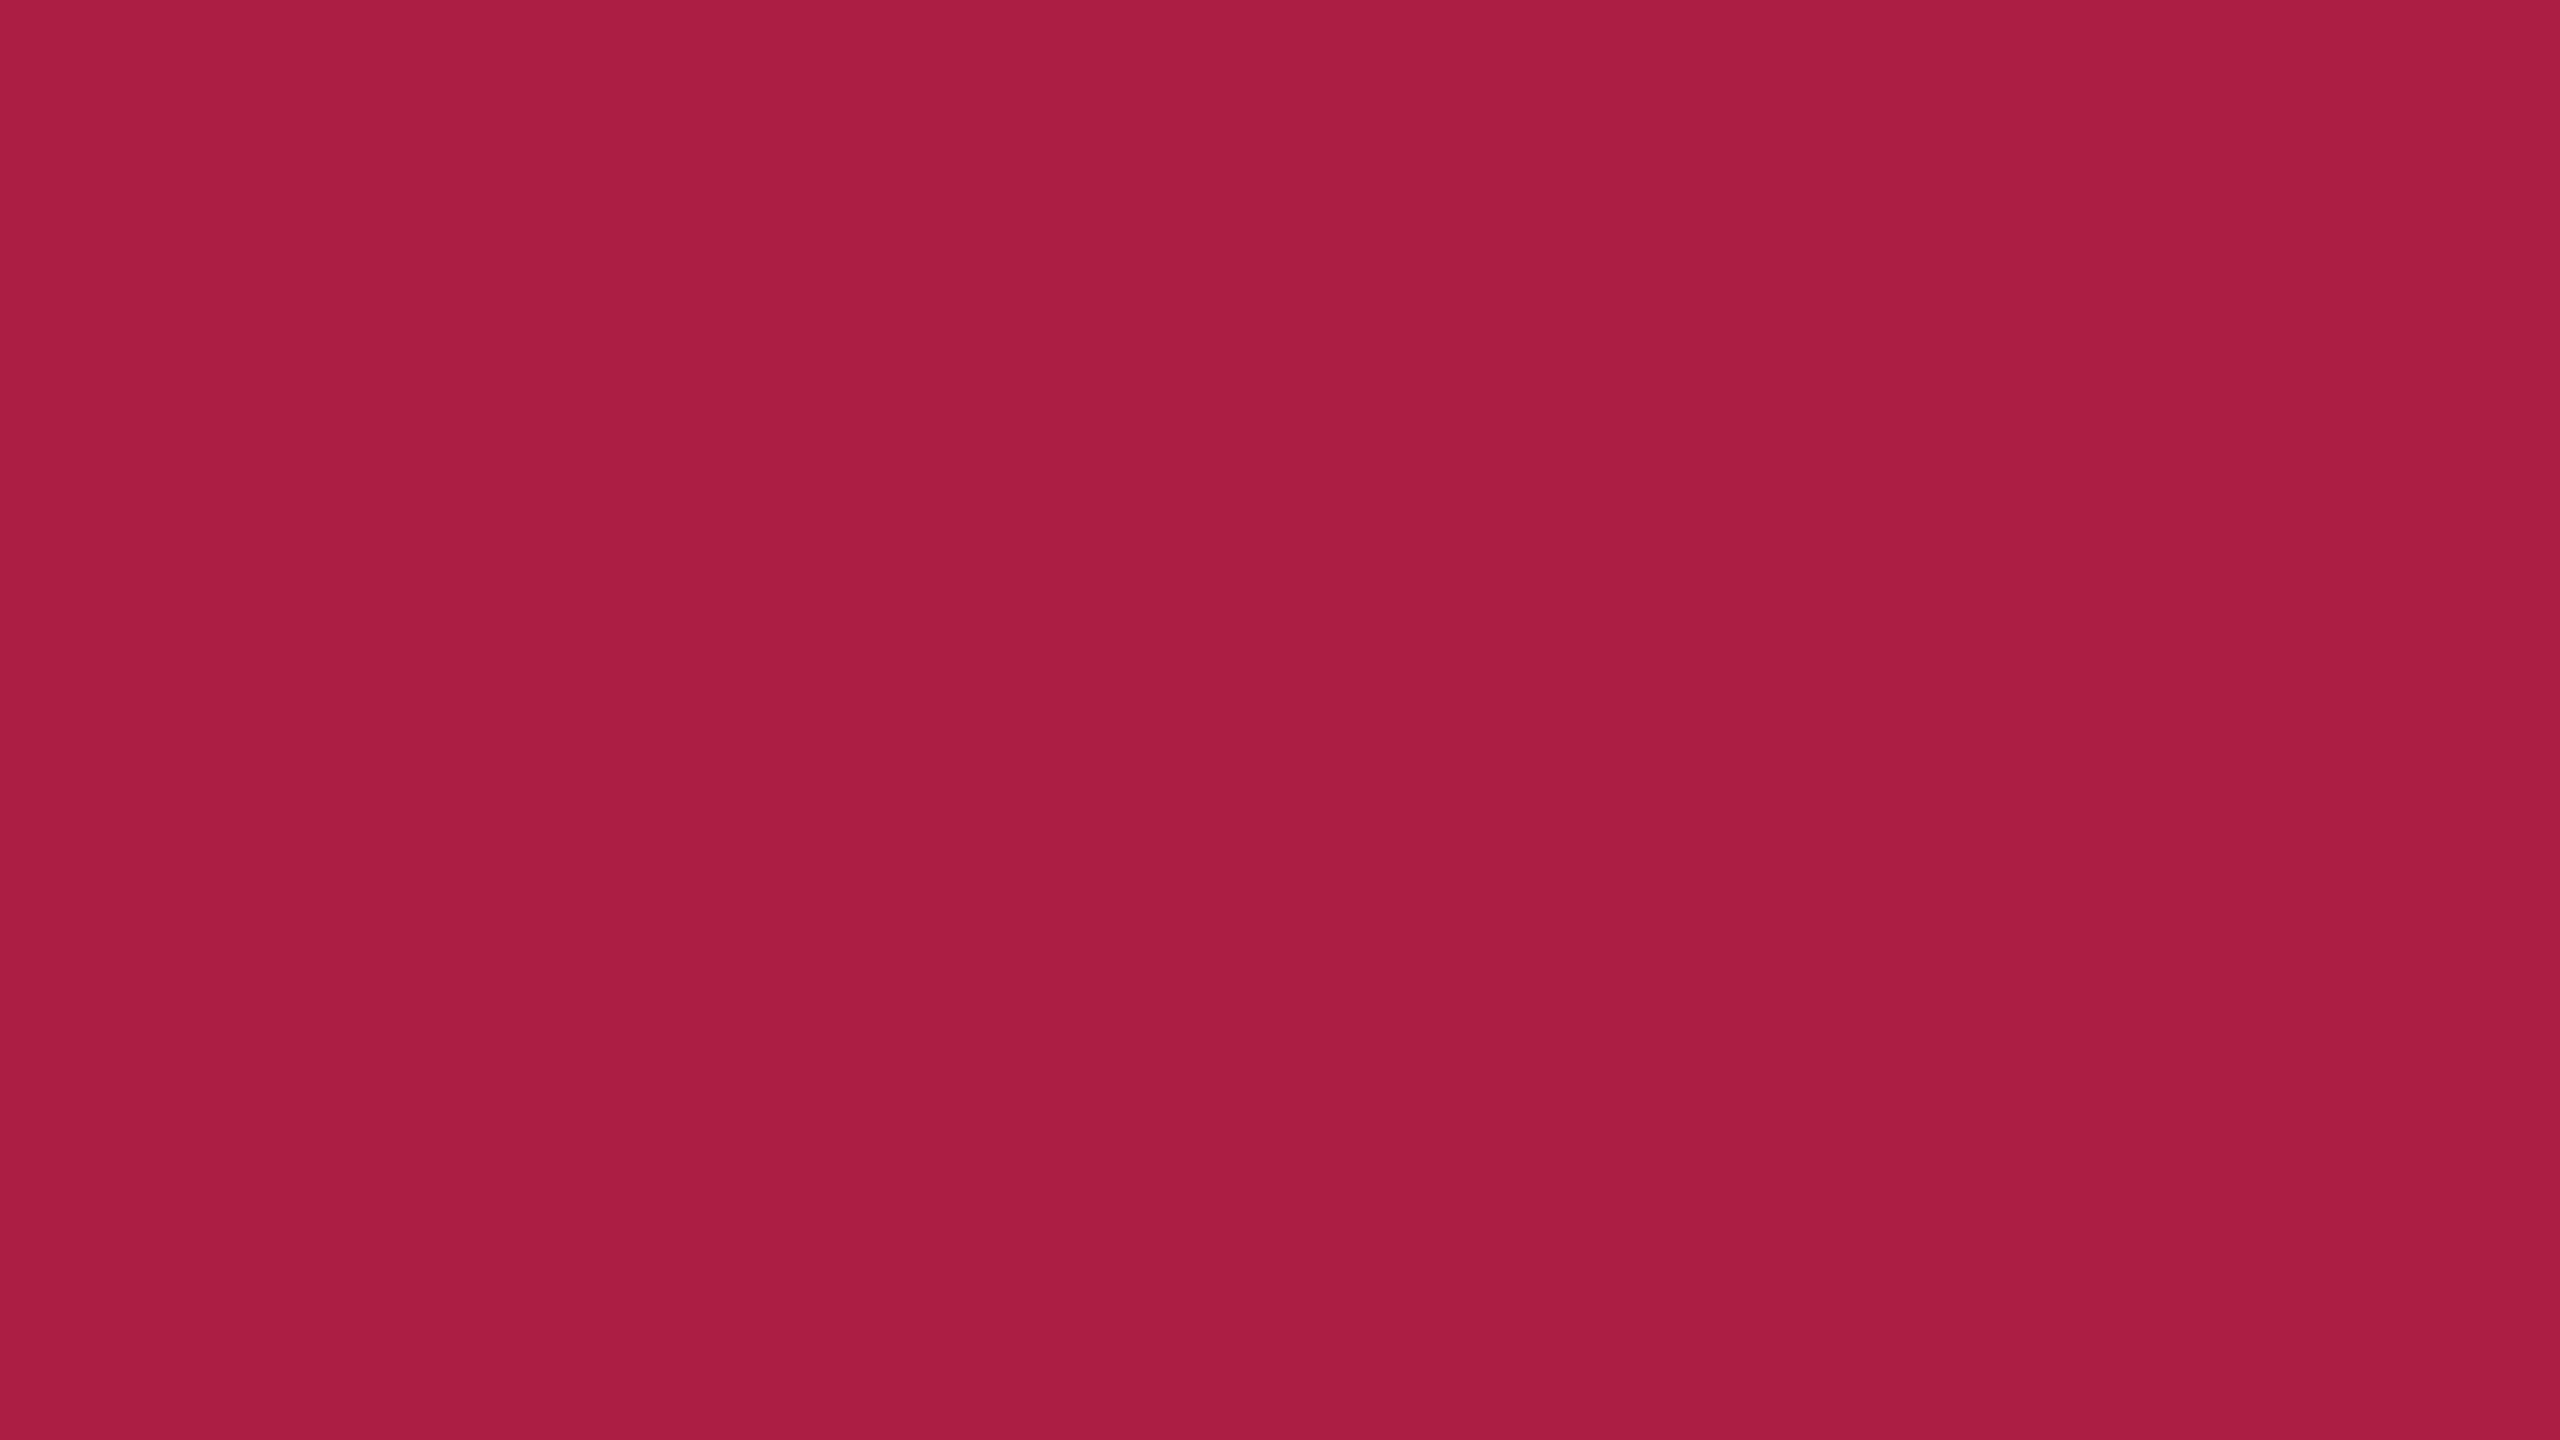 2560x1440 French Wine Solid Color Background